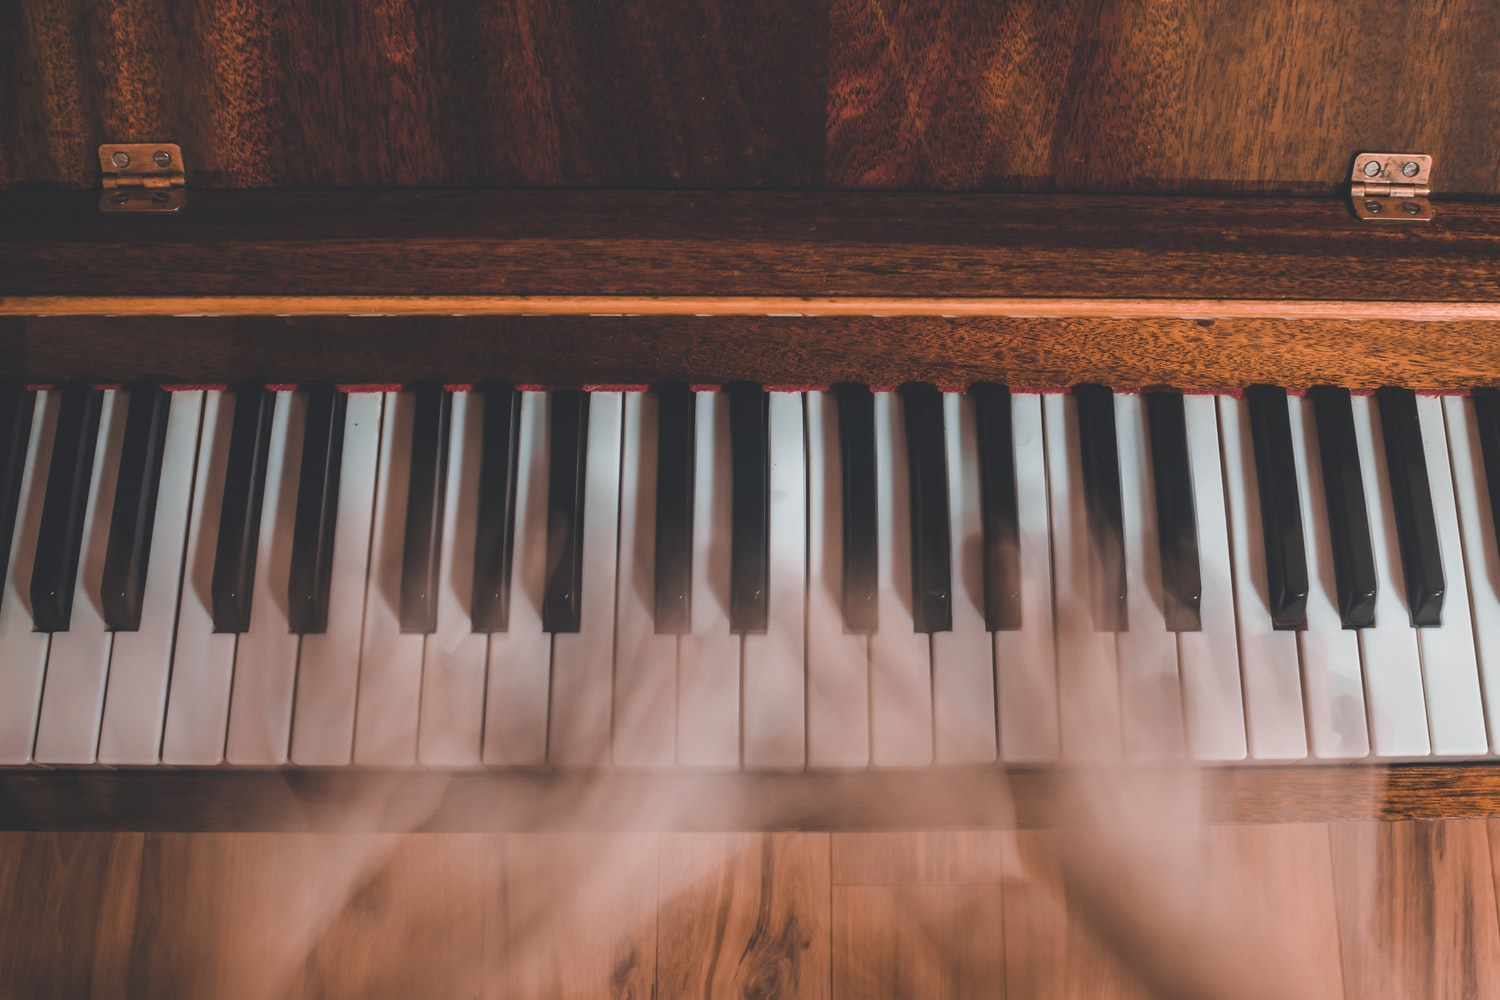 Bird's eye view of piano keyboard in wood finish with blurry hands.